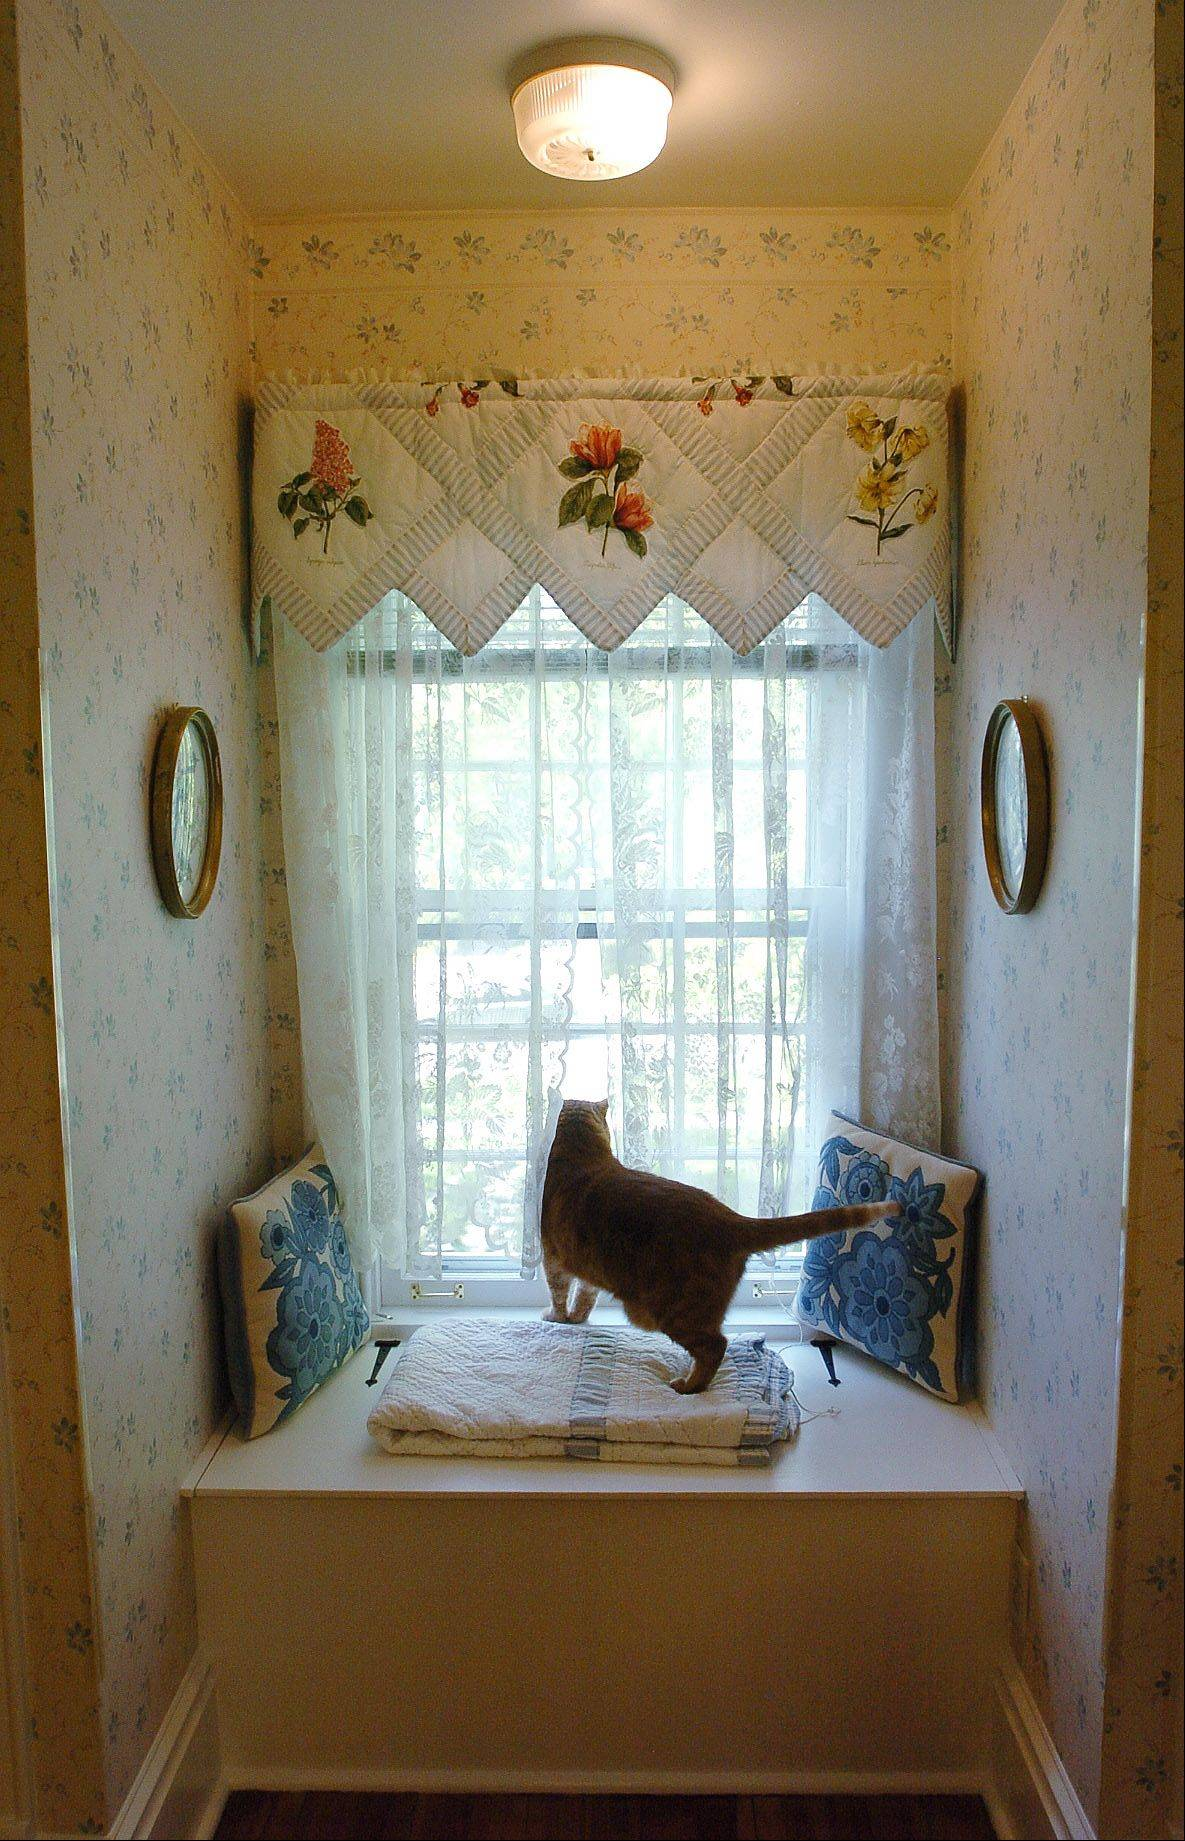 Simba surveys his domain under a valance Daisy Kessler made for the home's blue and white bedroom.